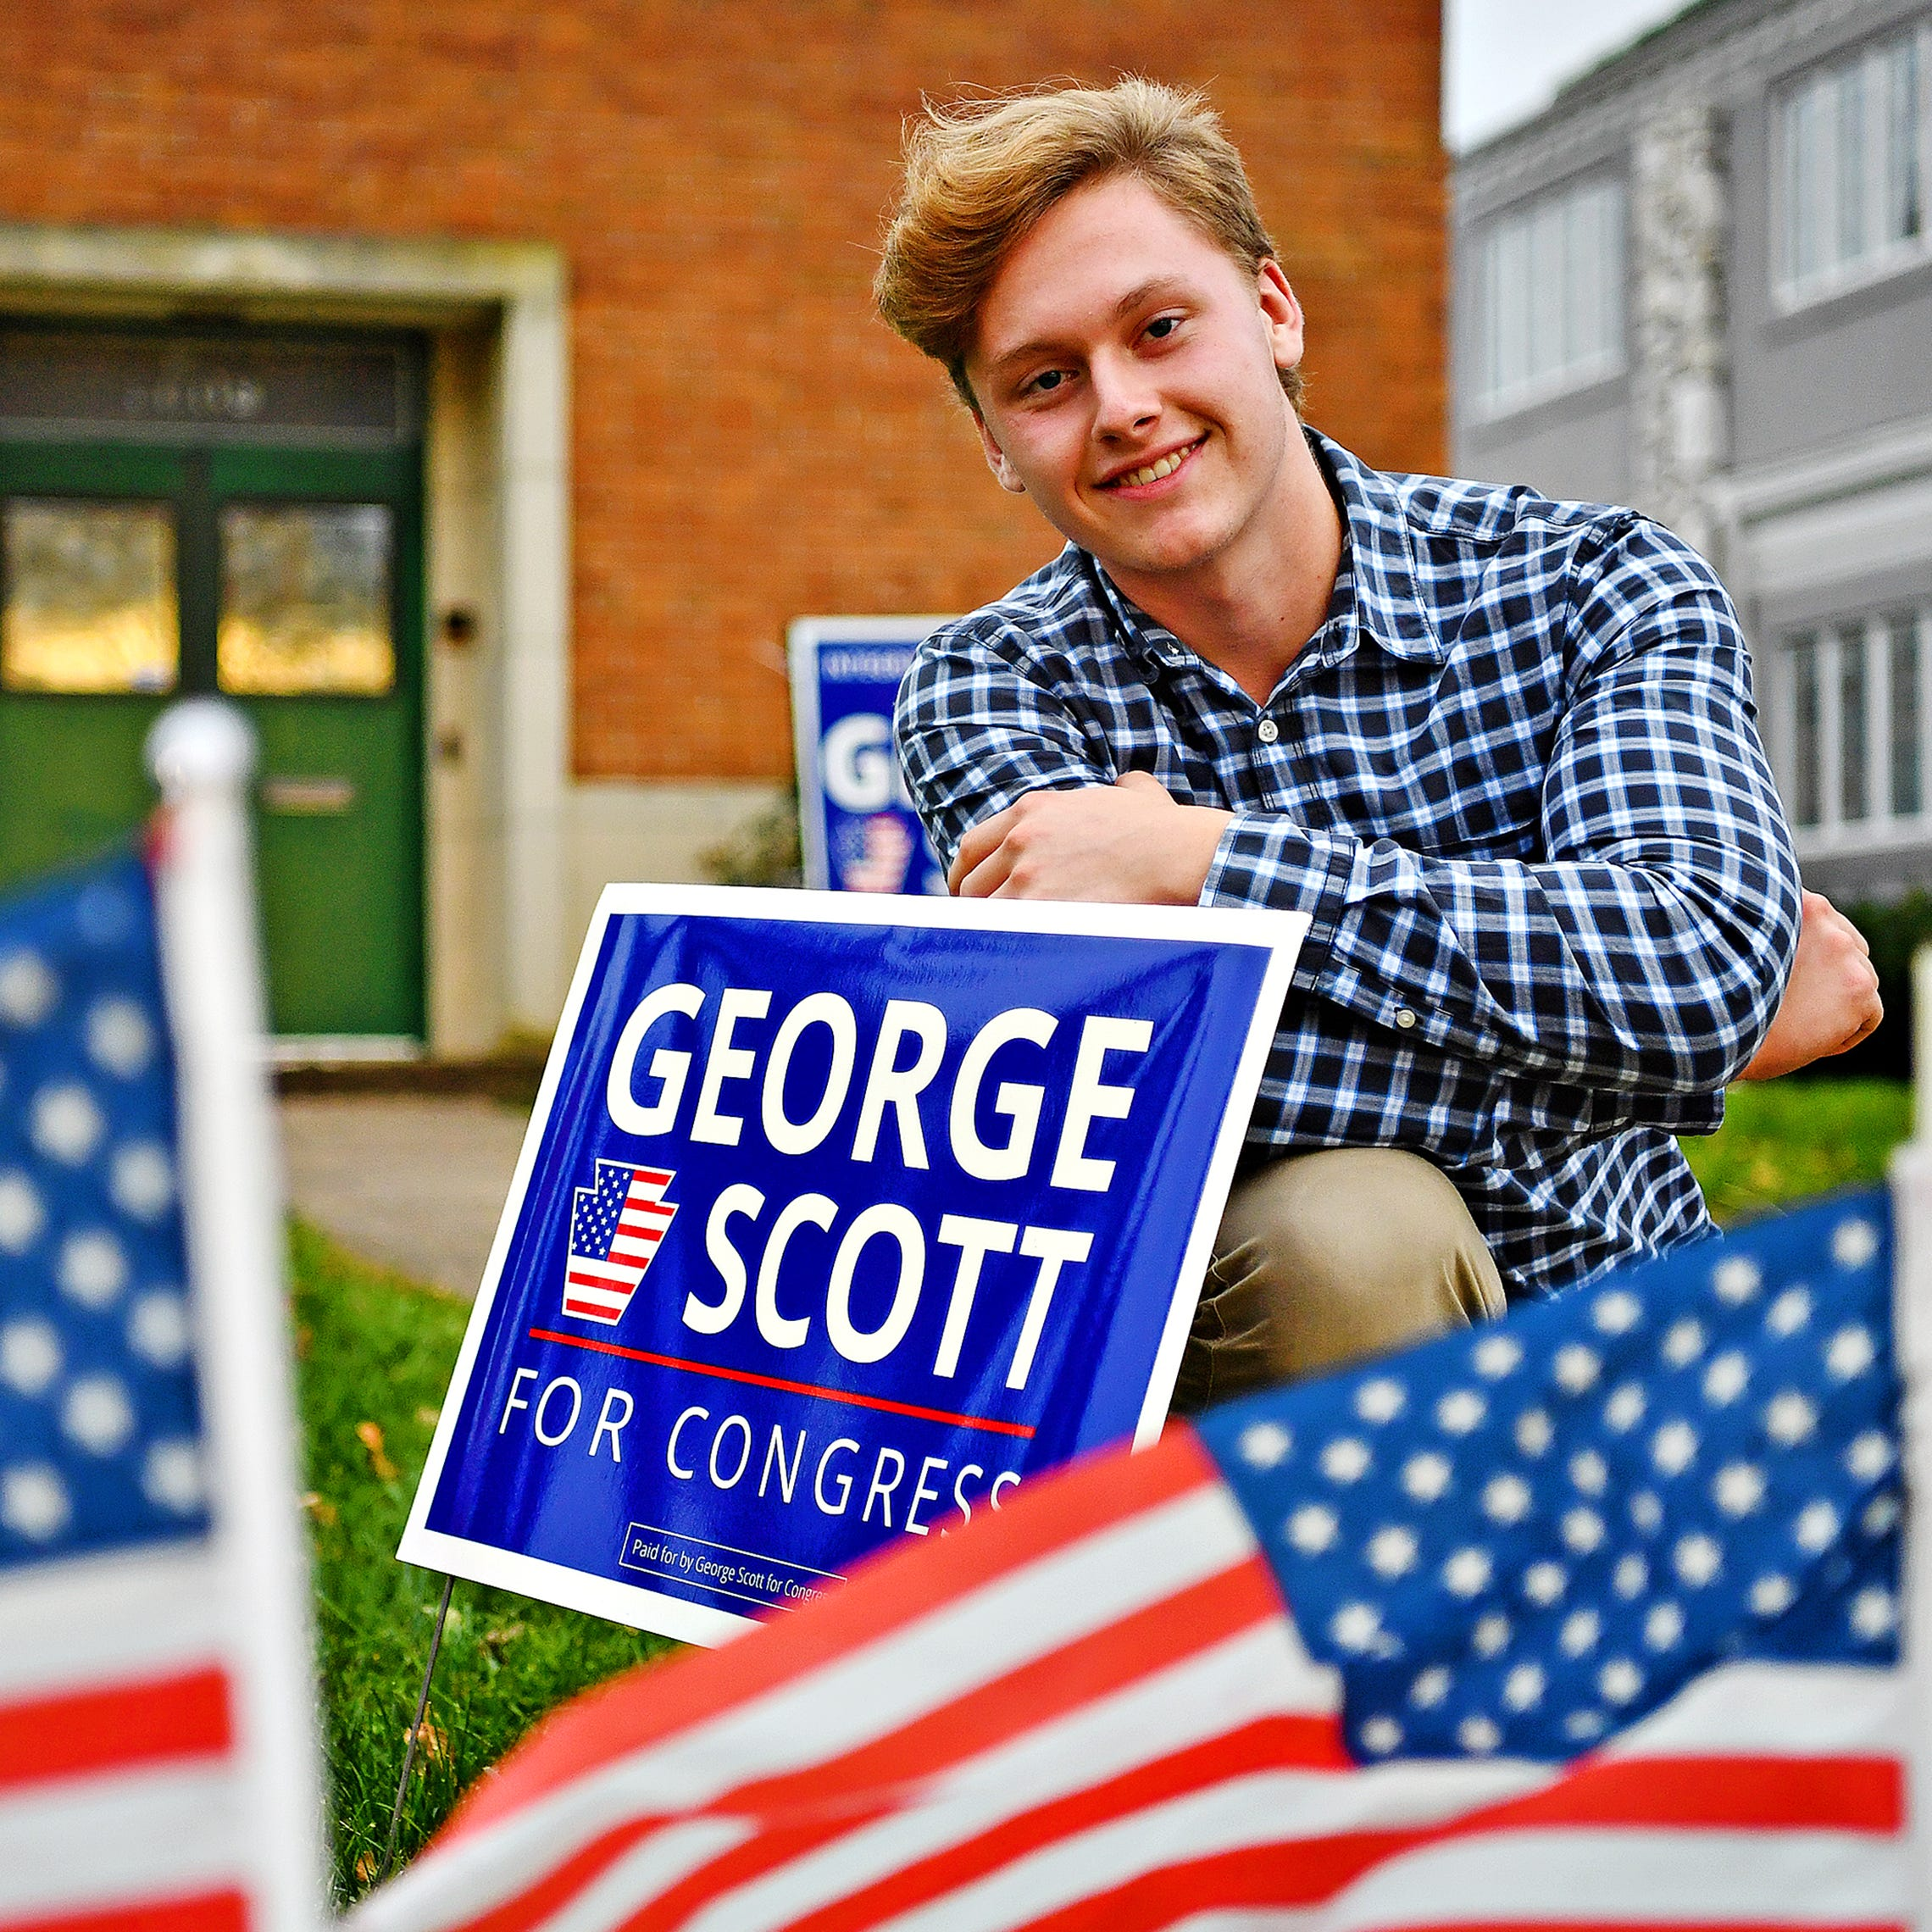 On his 18th birthday, Nicholas Scott's first-ever vote will be for Dad